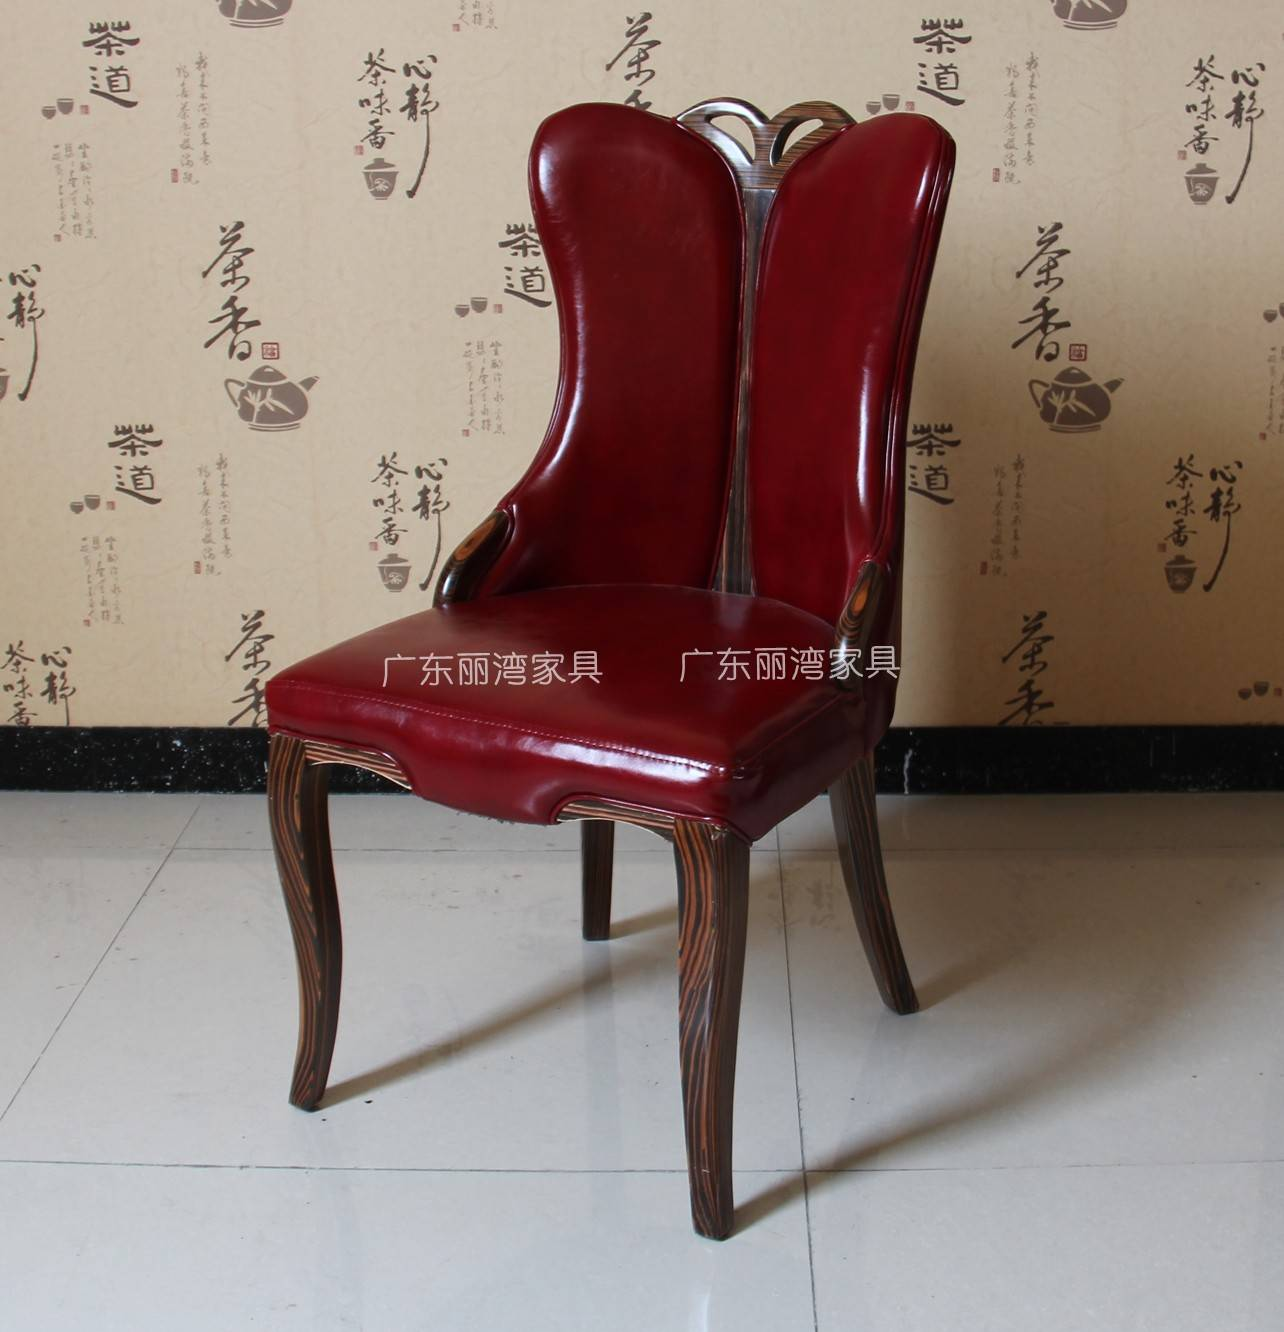 Wood-Leather Dining Chair_Liwan restaurant and hotel uesd Theme chair